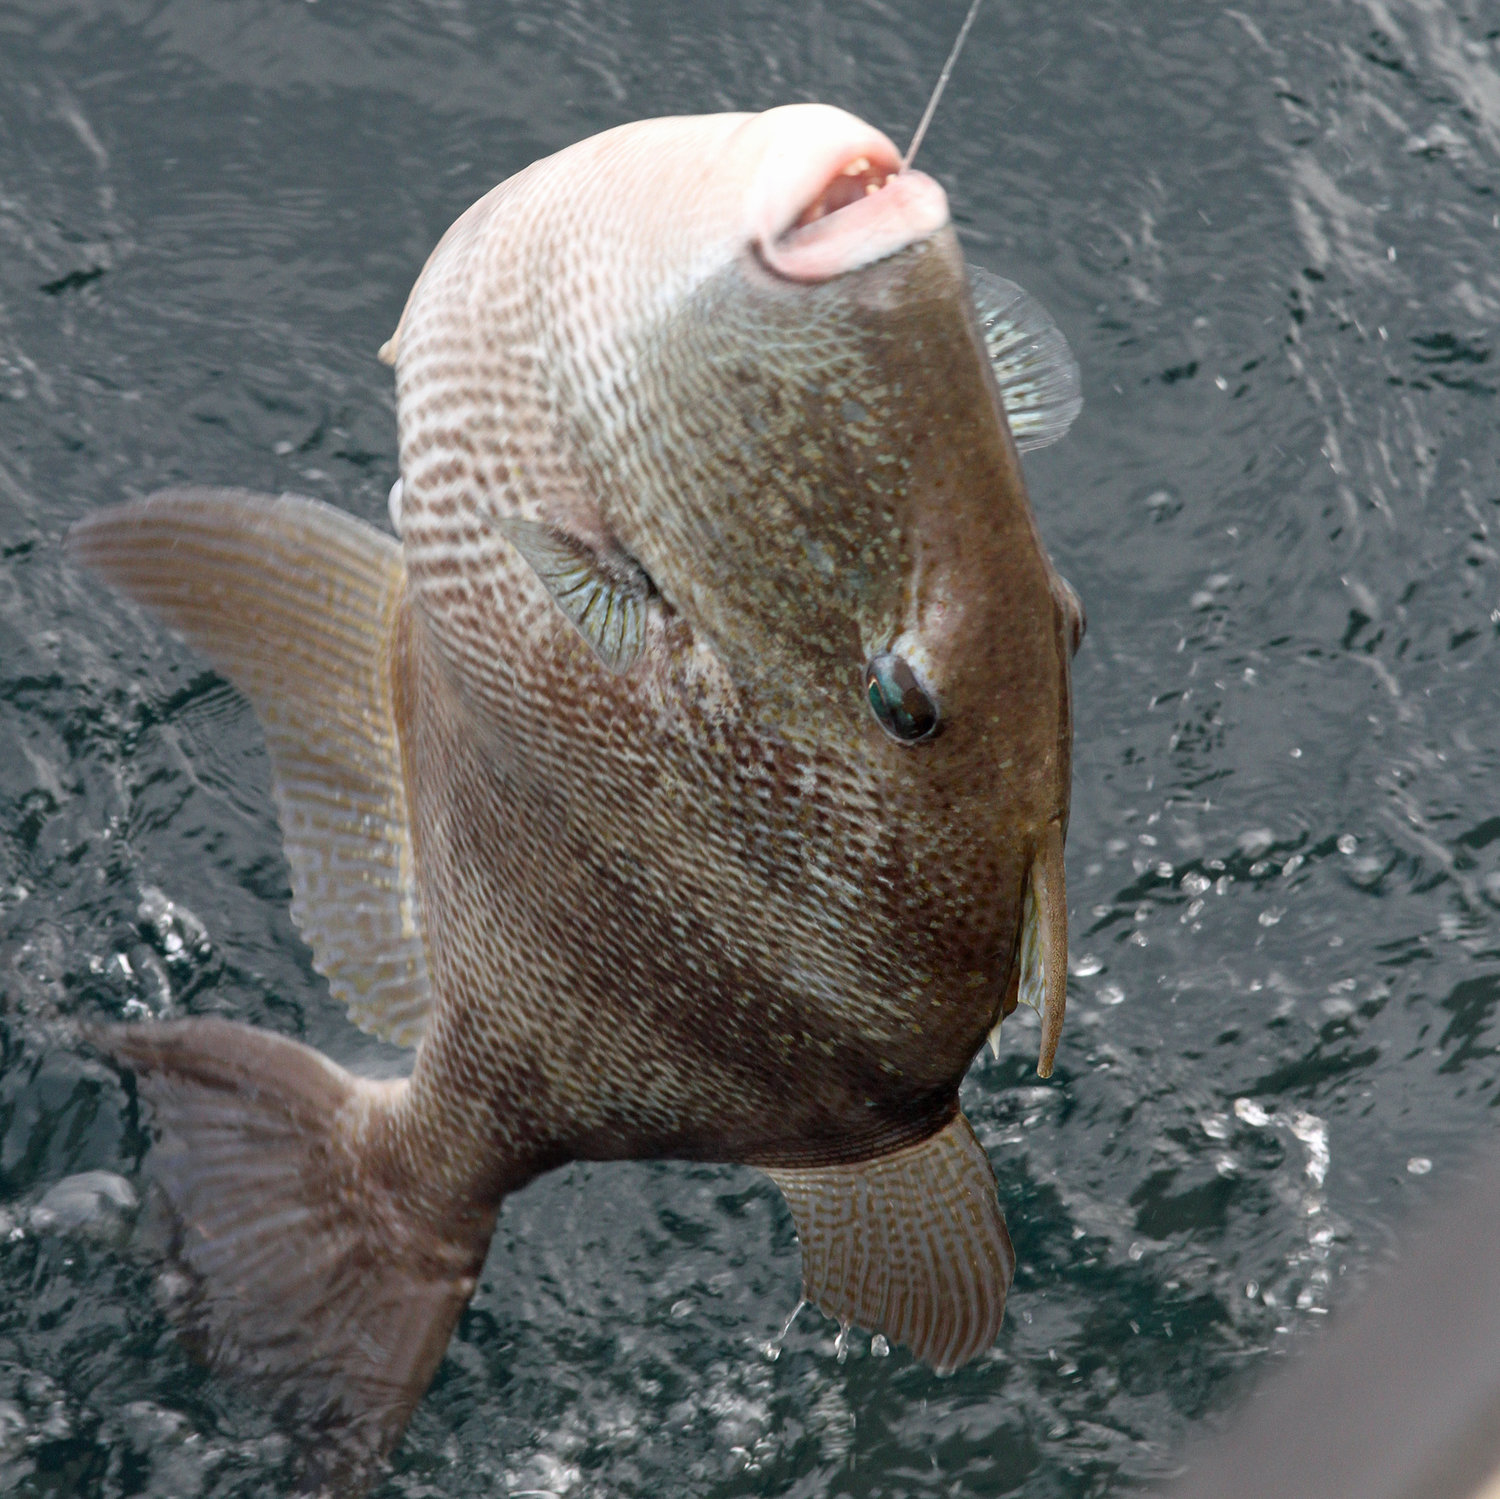 The 2021 quota for gray triggerfish in the Gulf of Mexico is 305,300 pounds.